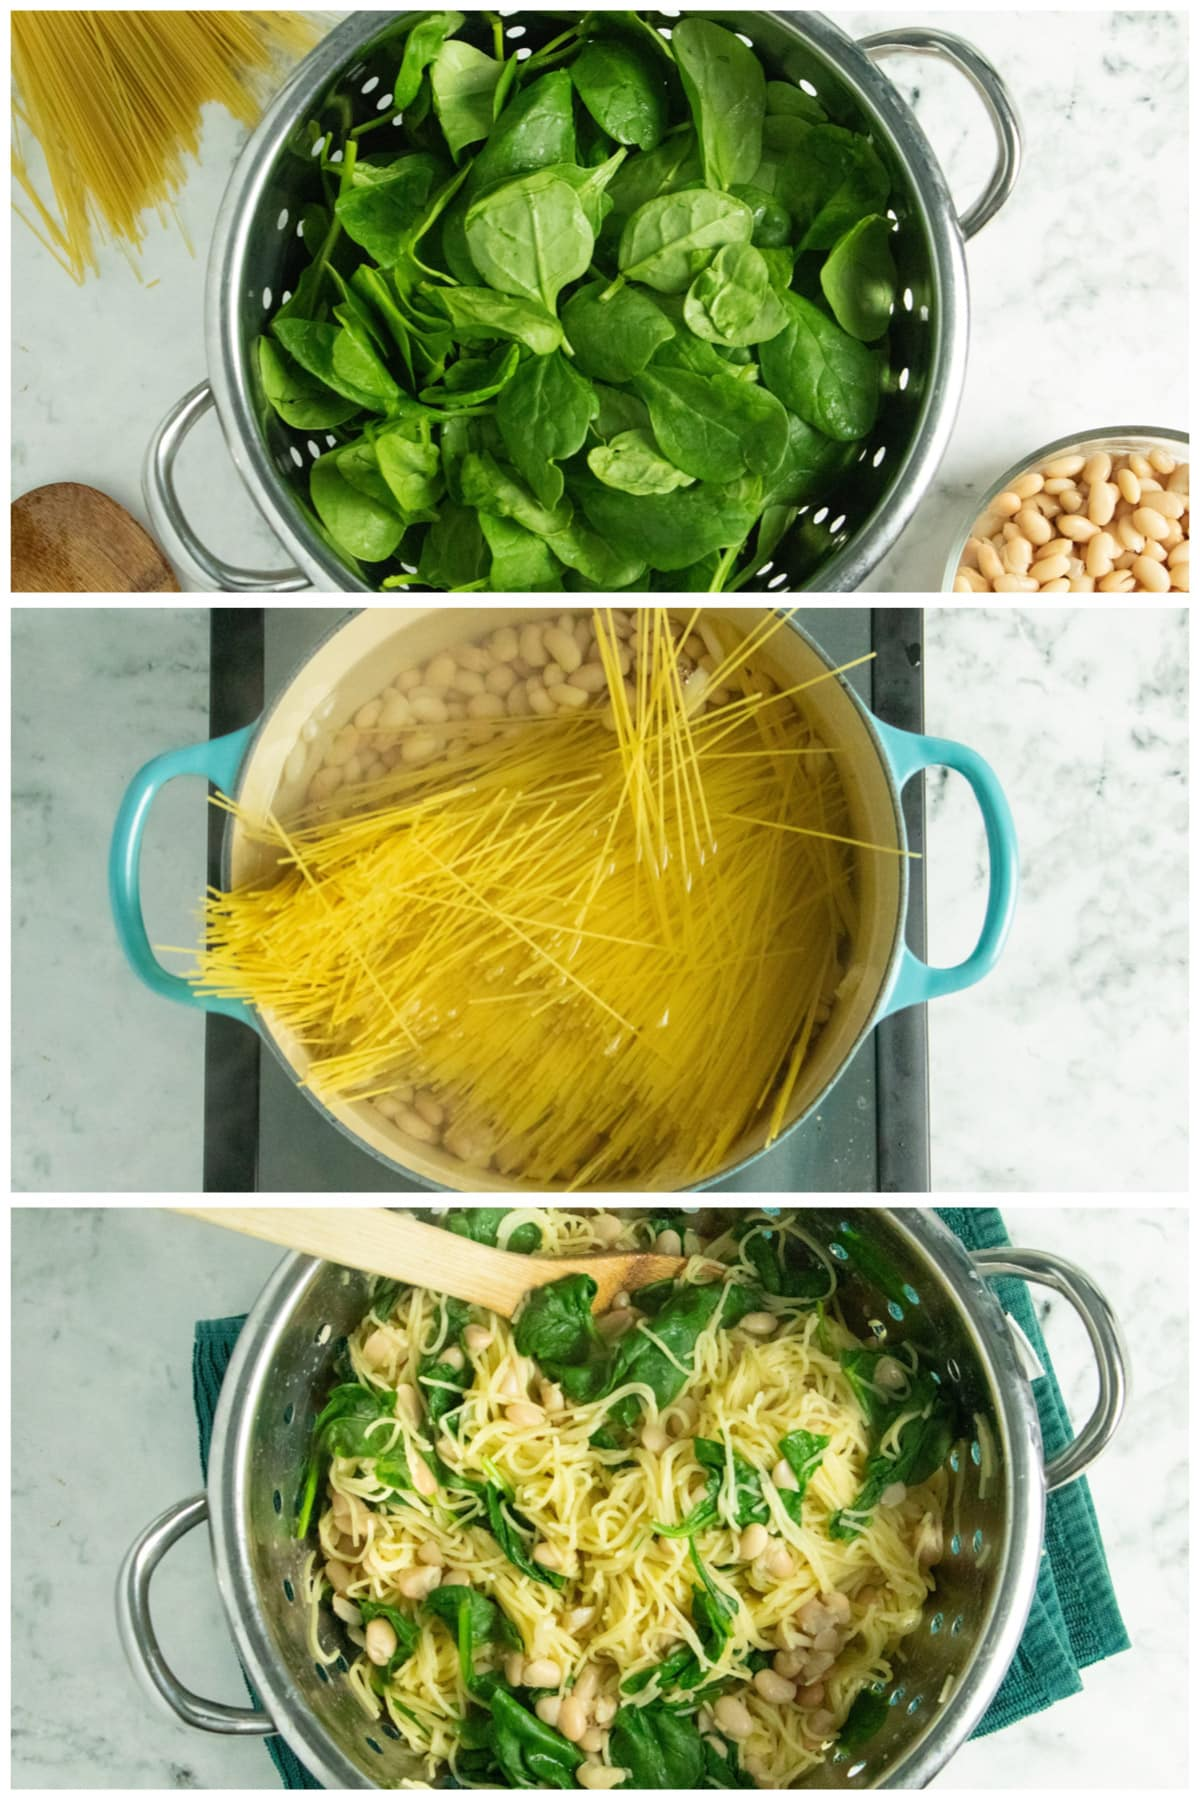 image collage showing uncooked spinach in the colander, pasta and beans in the pan, and then everything stirred together in the colander with a wooden spoon